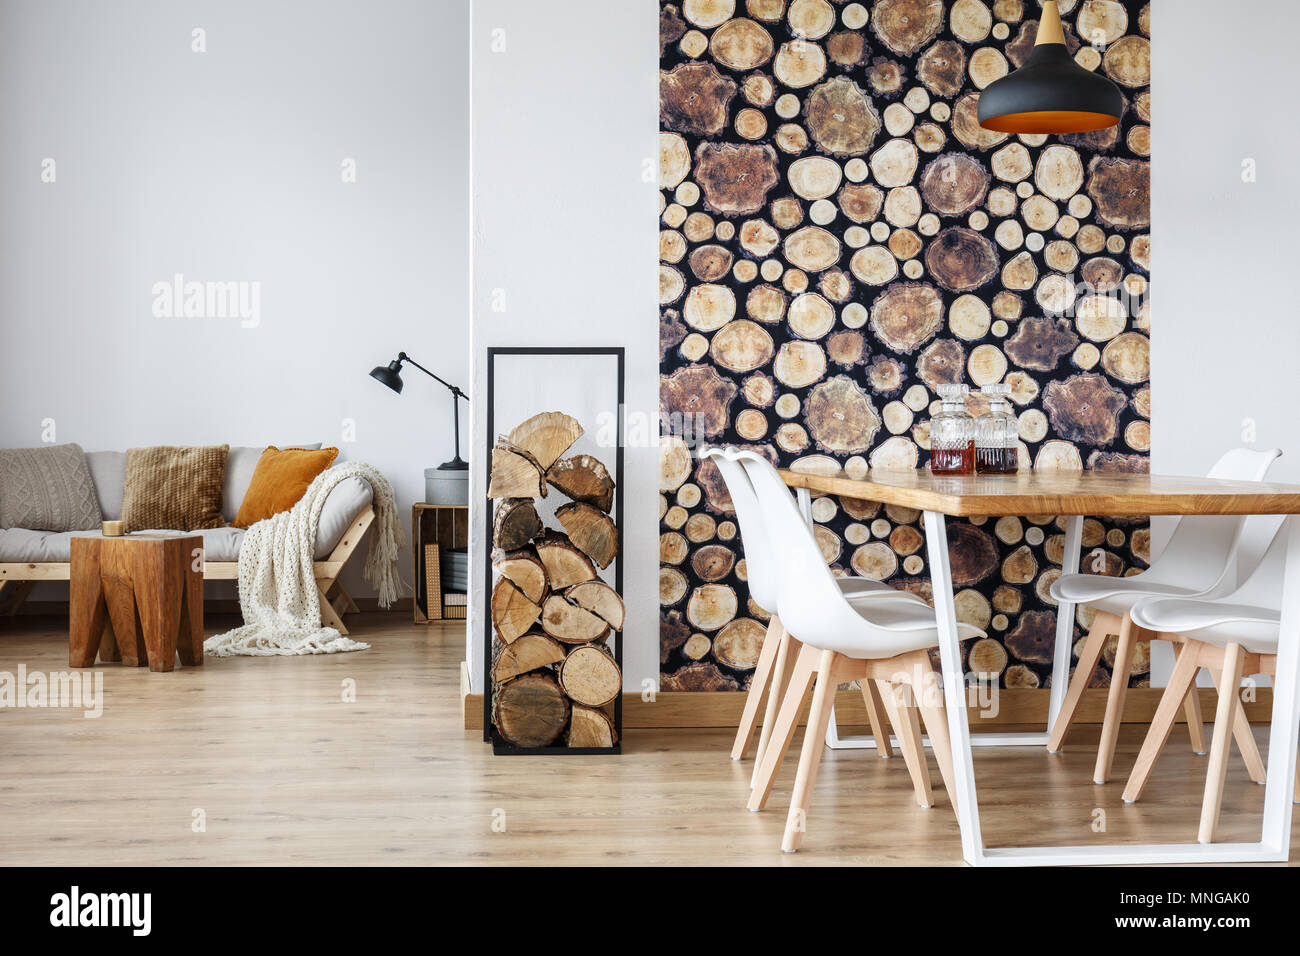 Open Dining Room Interior With Firewood Communal Table And Wooden